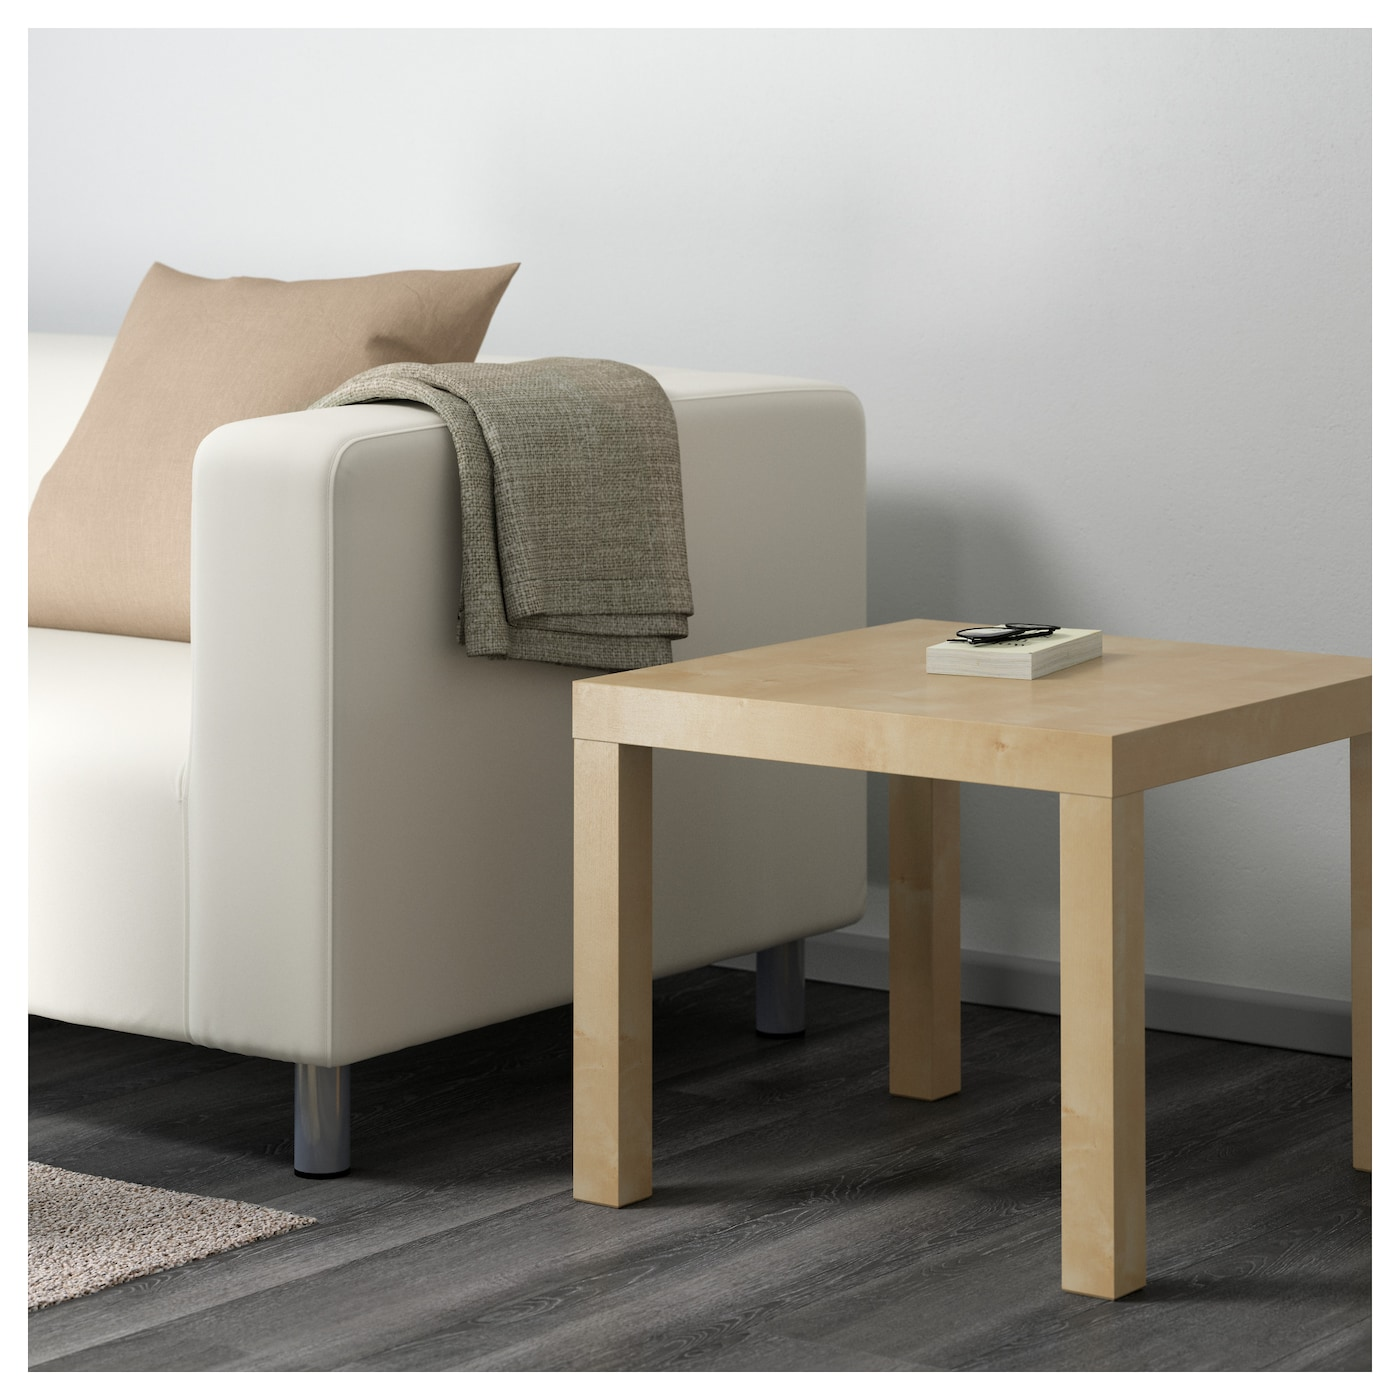 Image result for lack ikea table